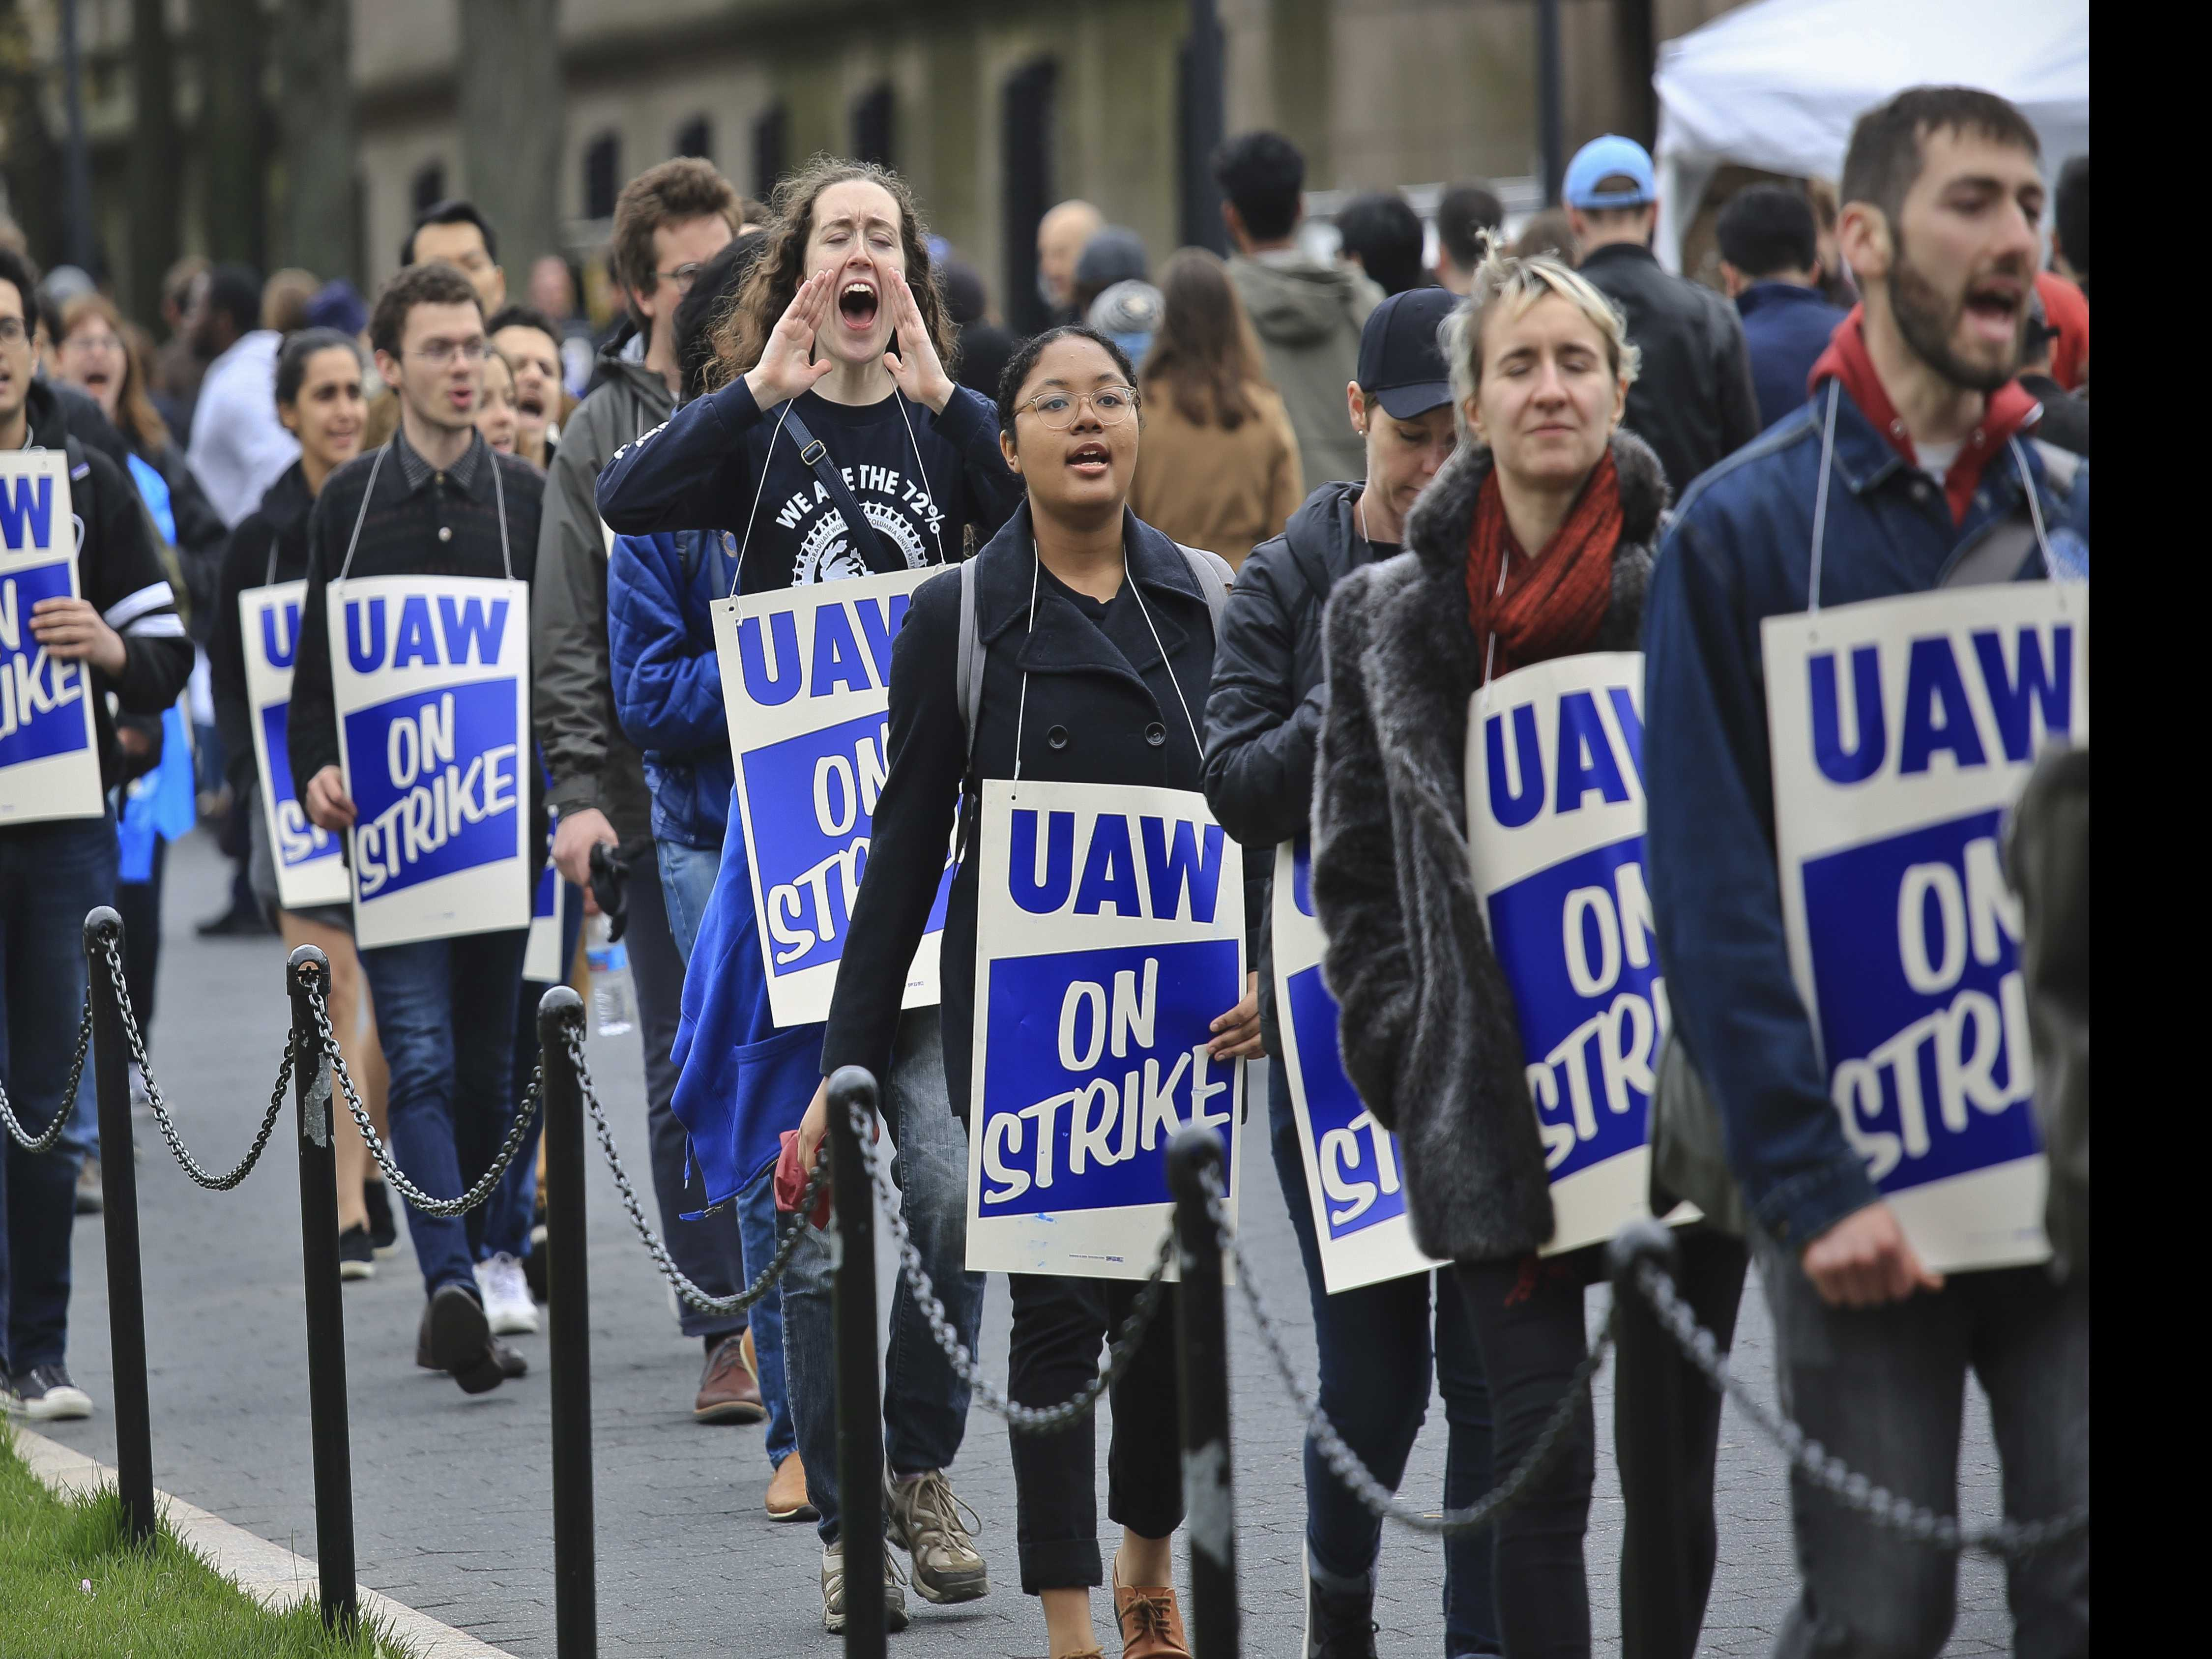 Regardless of High Court Ruling, Unions Show Signs of Life